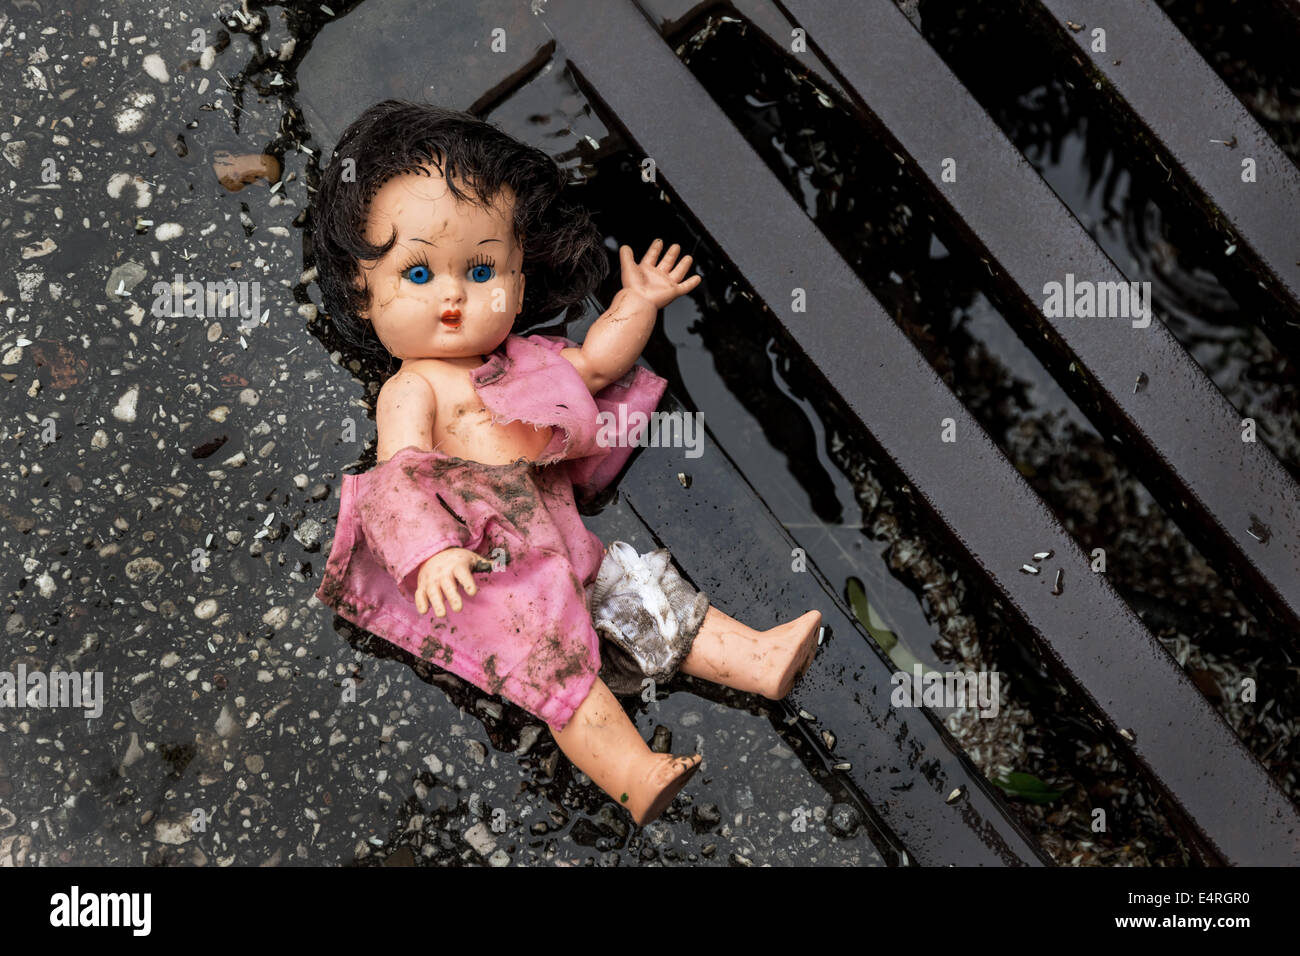 Graphic photos of child abuse